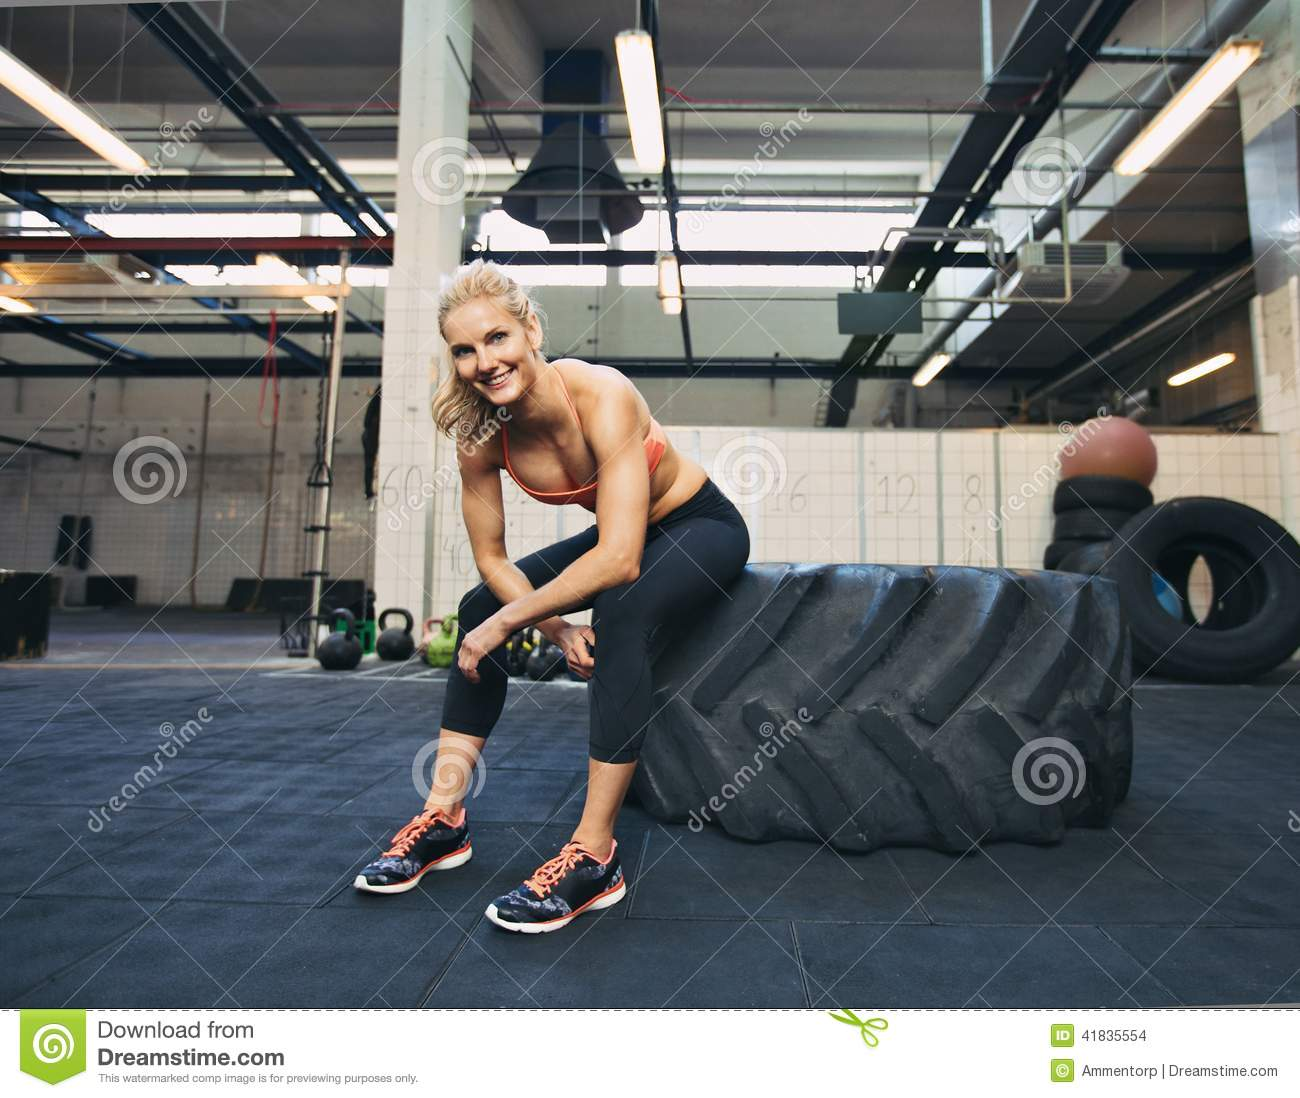 Fit Ladies Who Work Out And Have: Female Athlete Taking Rest After Tough Crossfit Workout